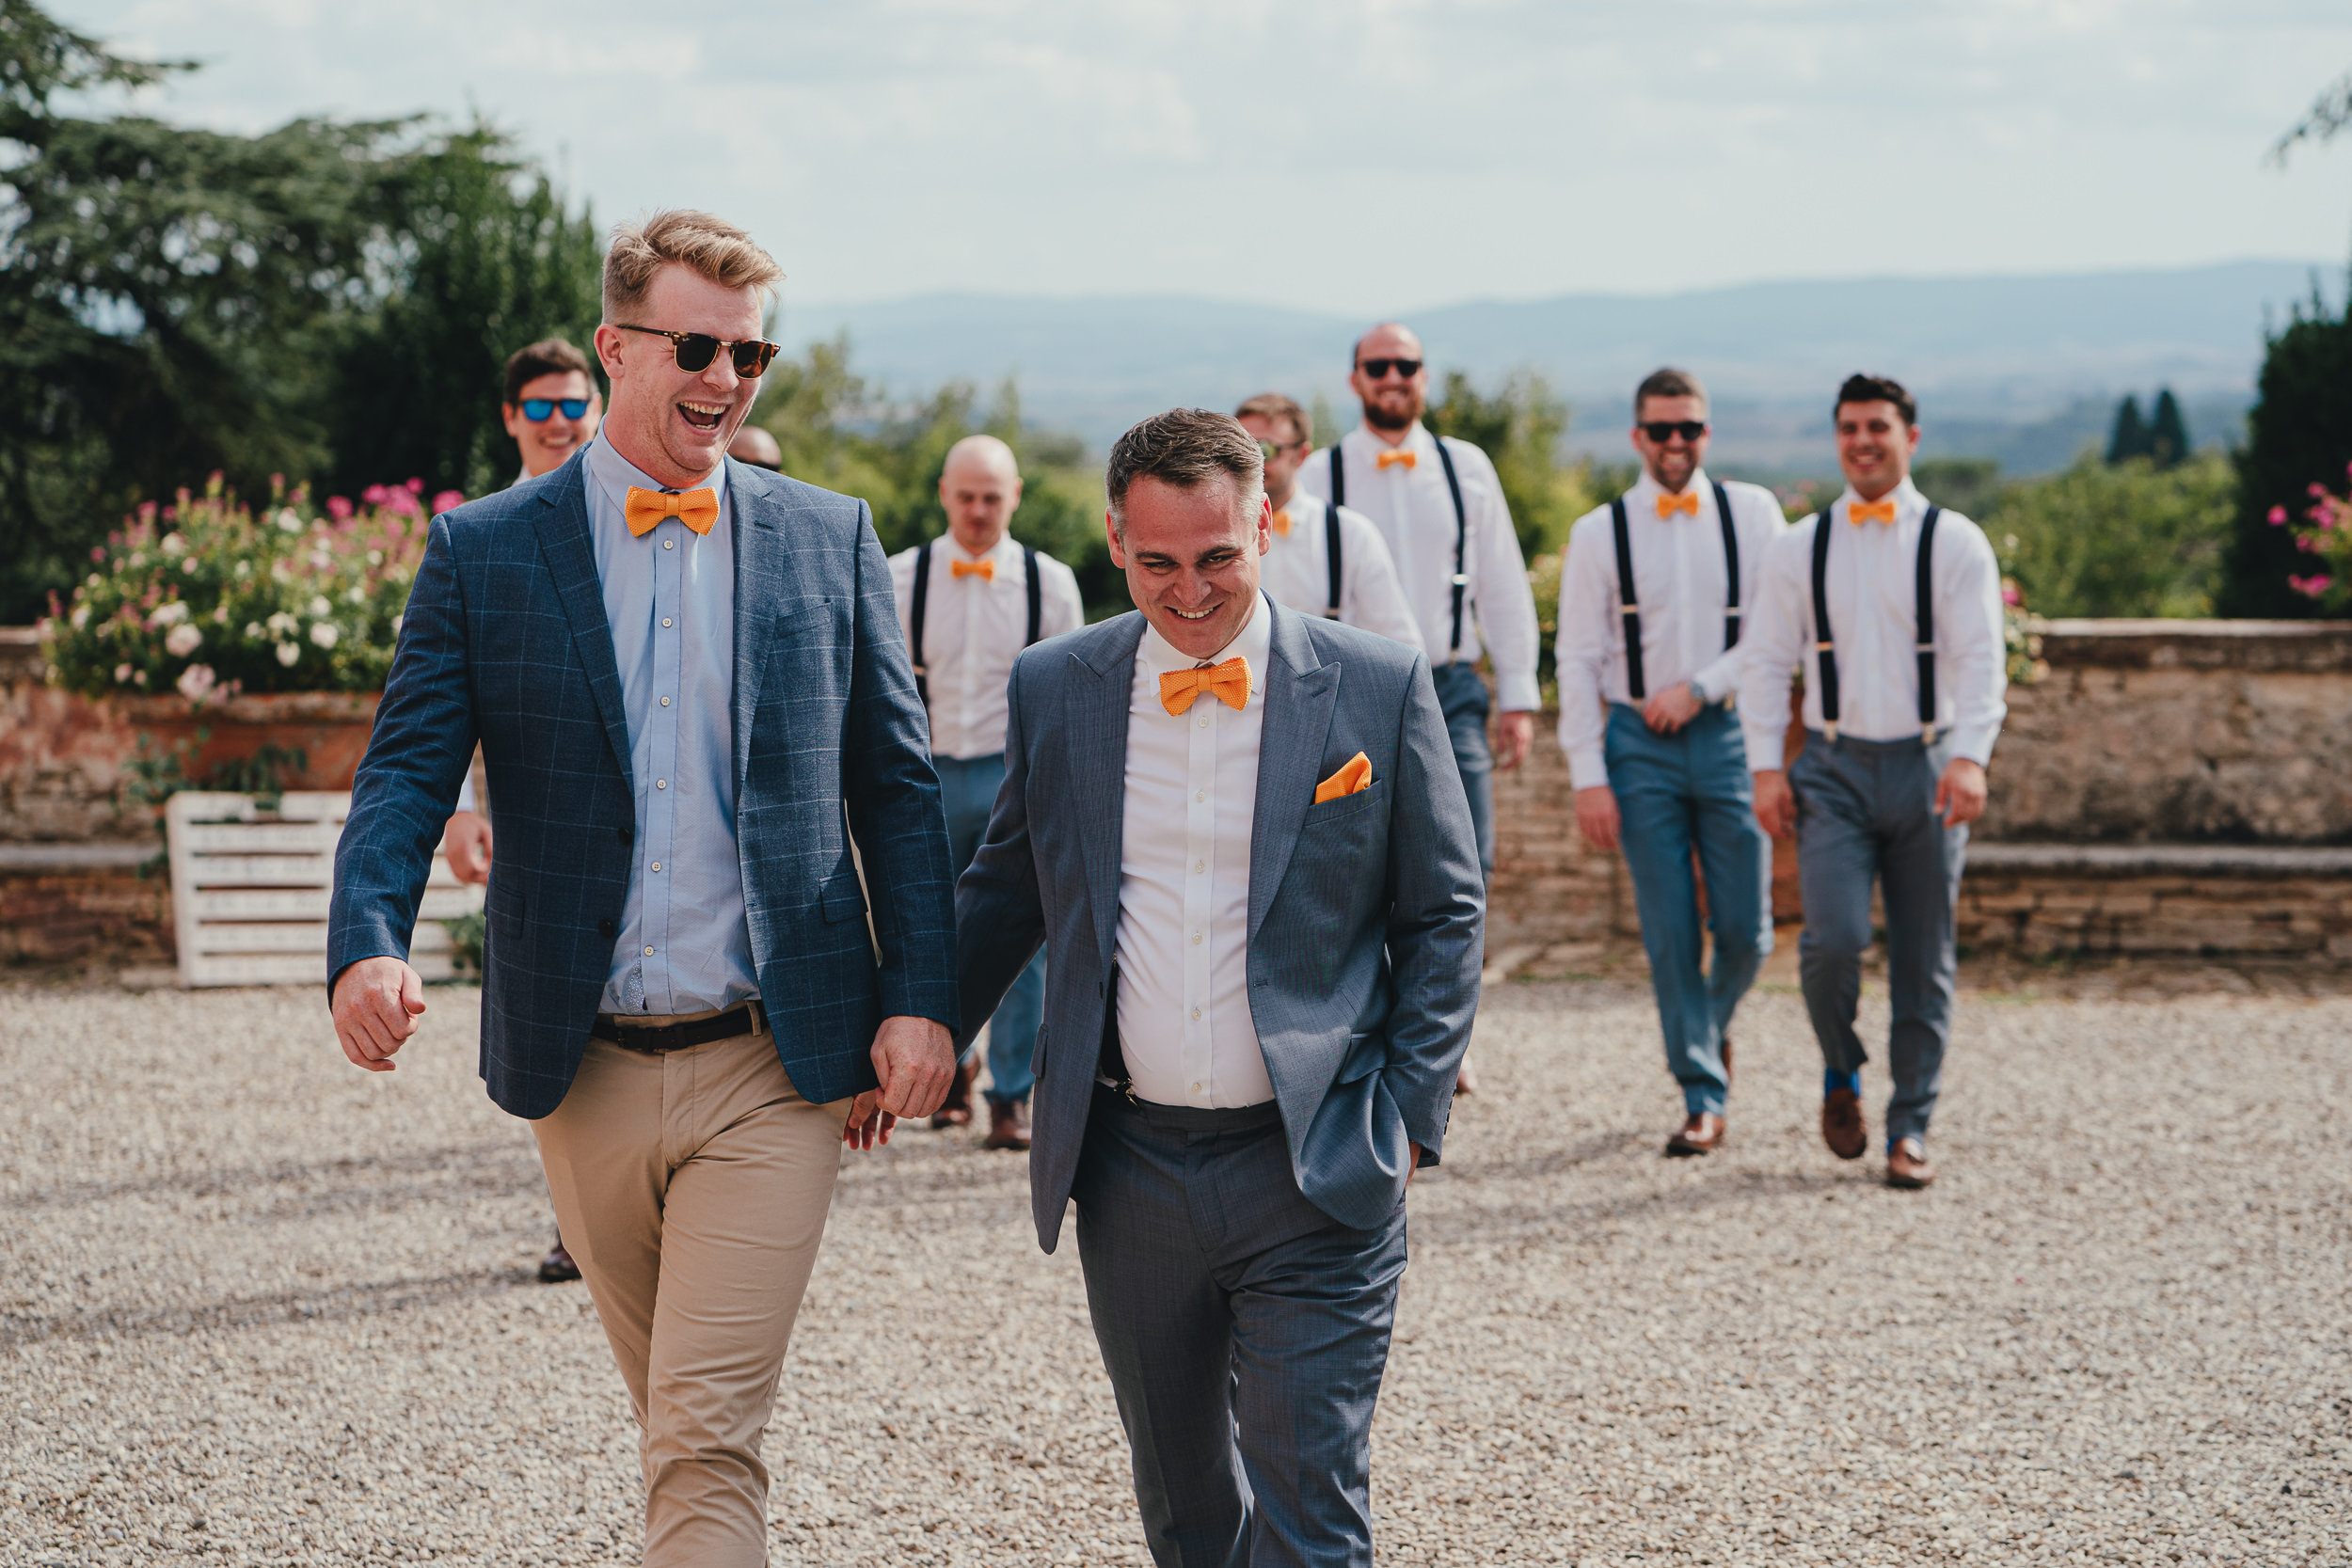 Tuscan Villa Wedding - The Groom and his friends at Villa Catignano